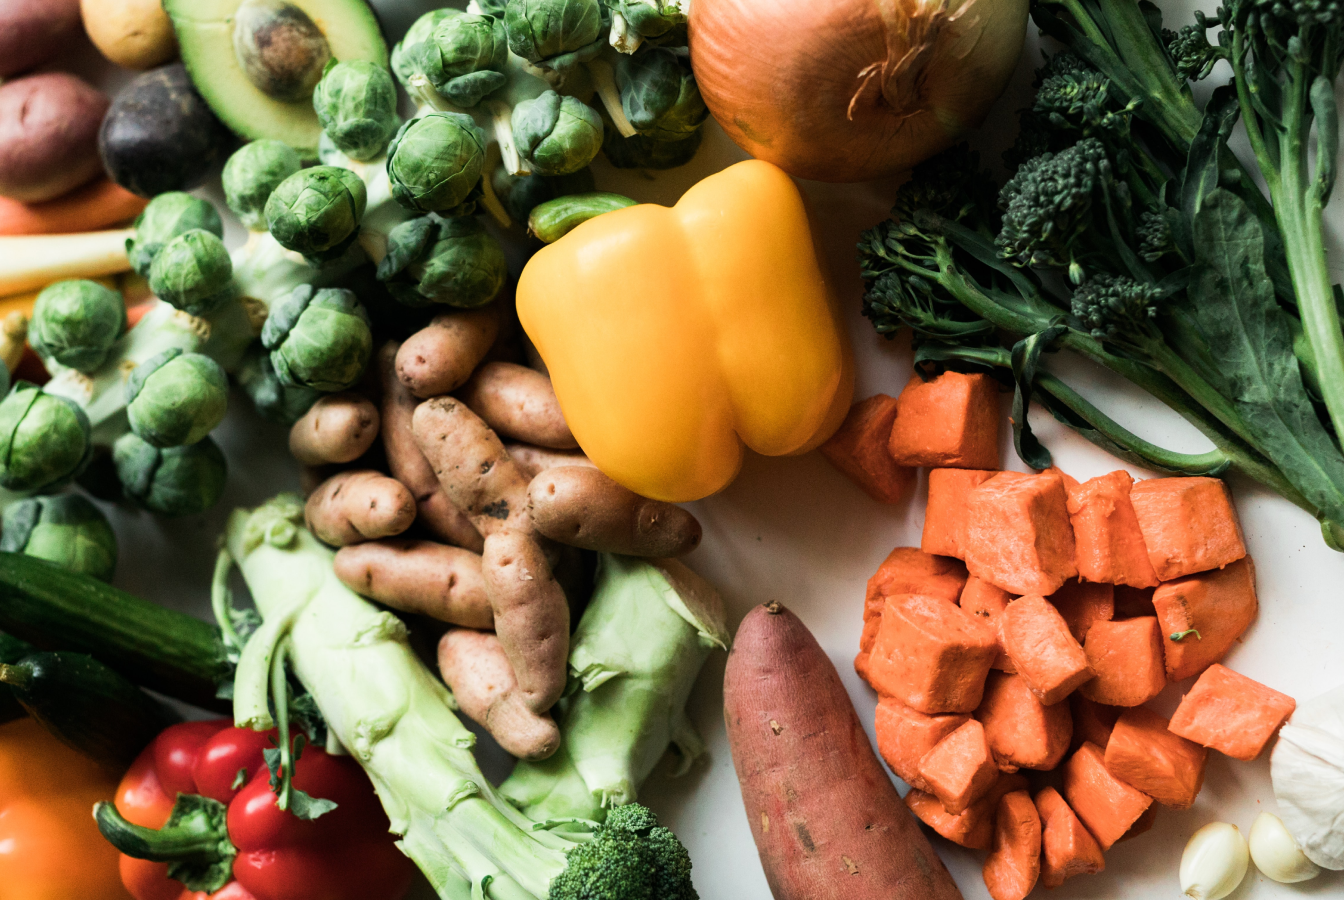 Yellow pepper, brussel sprouts, potatos, yams and broccoli, all low carbon food items.